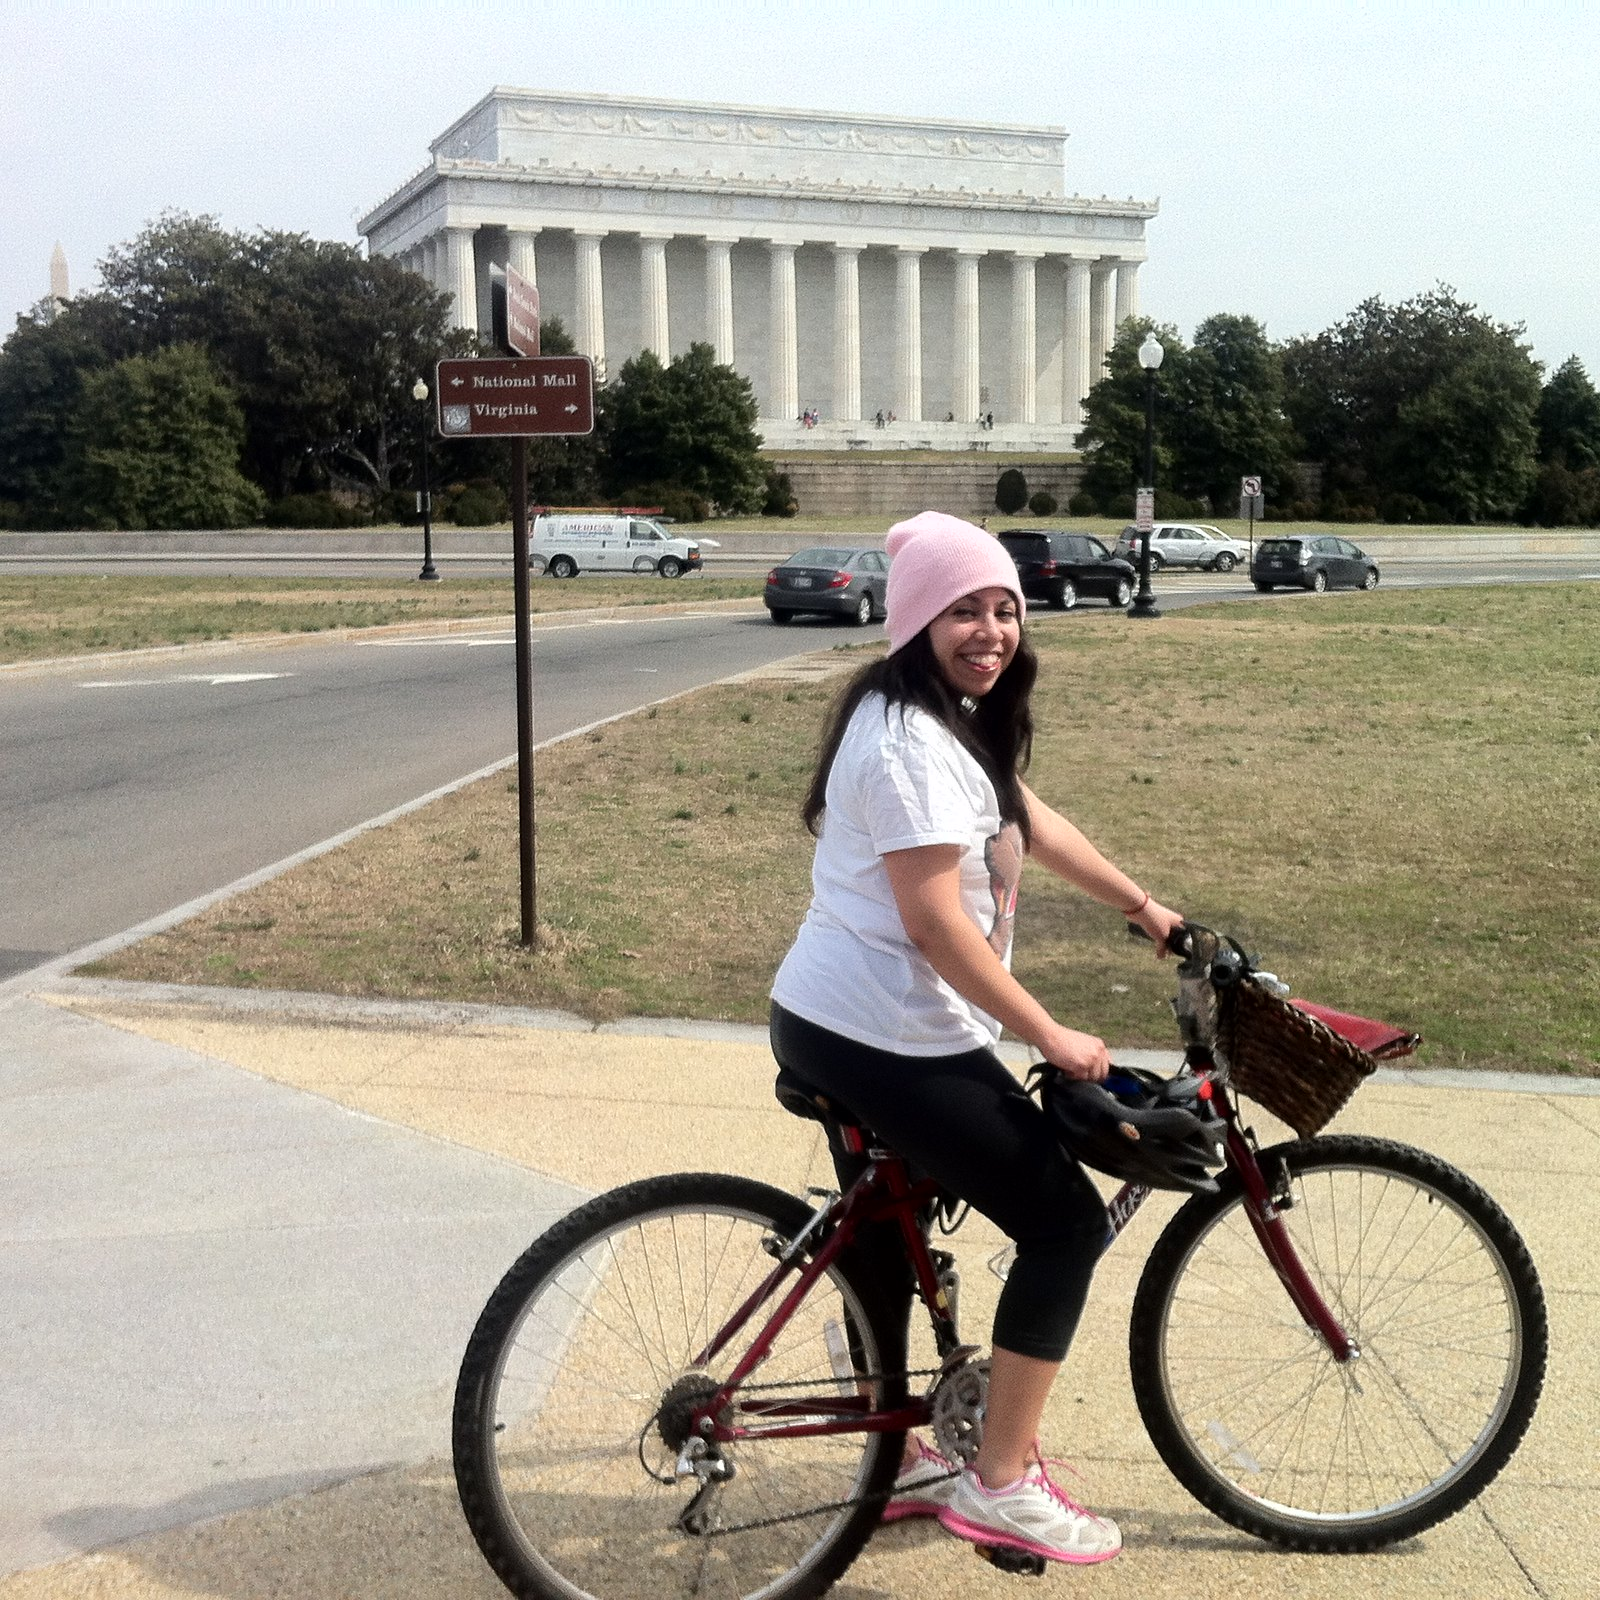 Bike riding on the National Mall (Lincoln Memorial in the back)